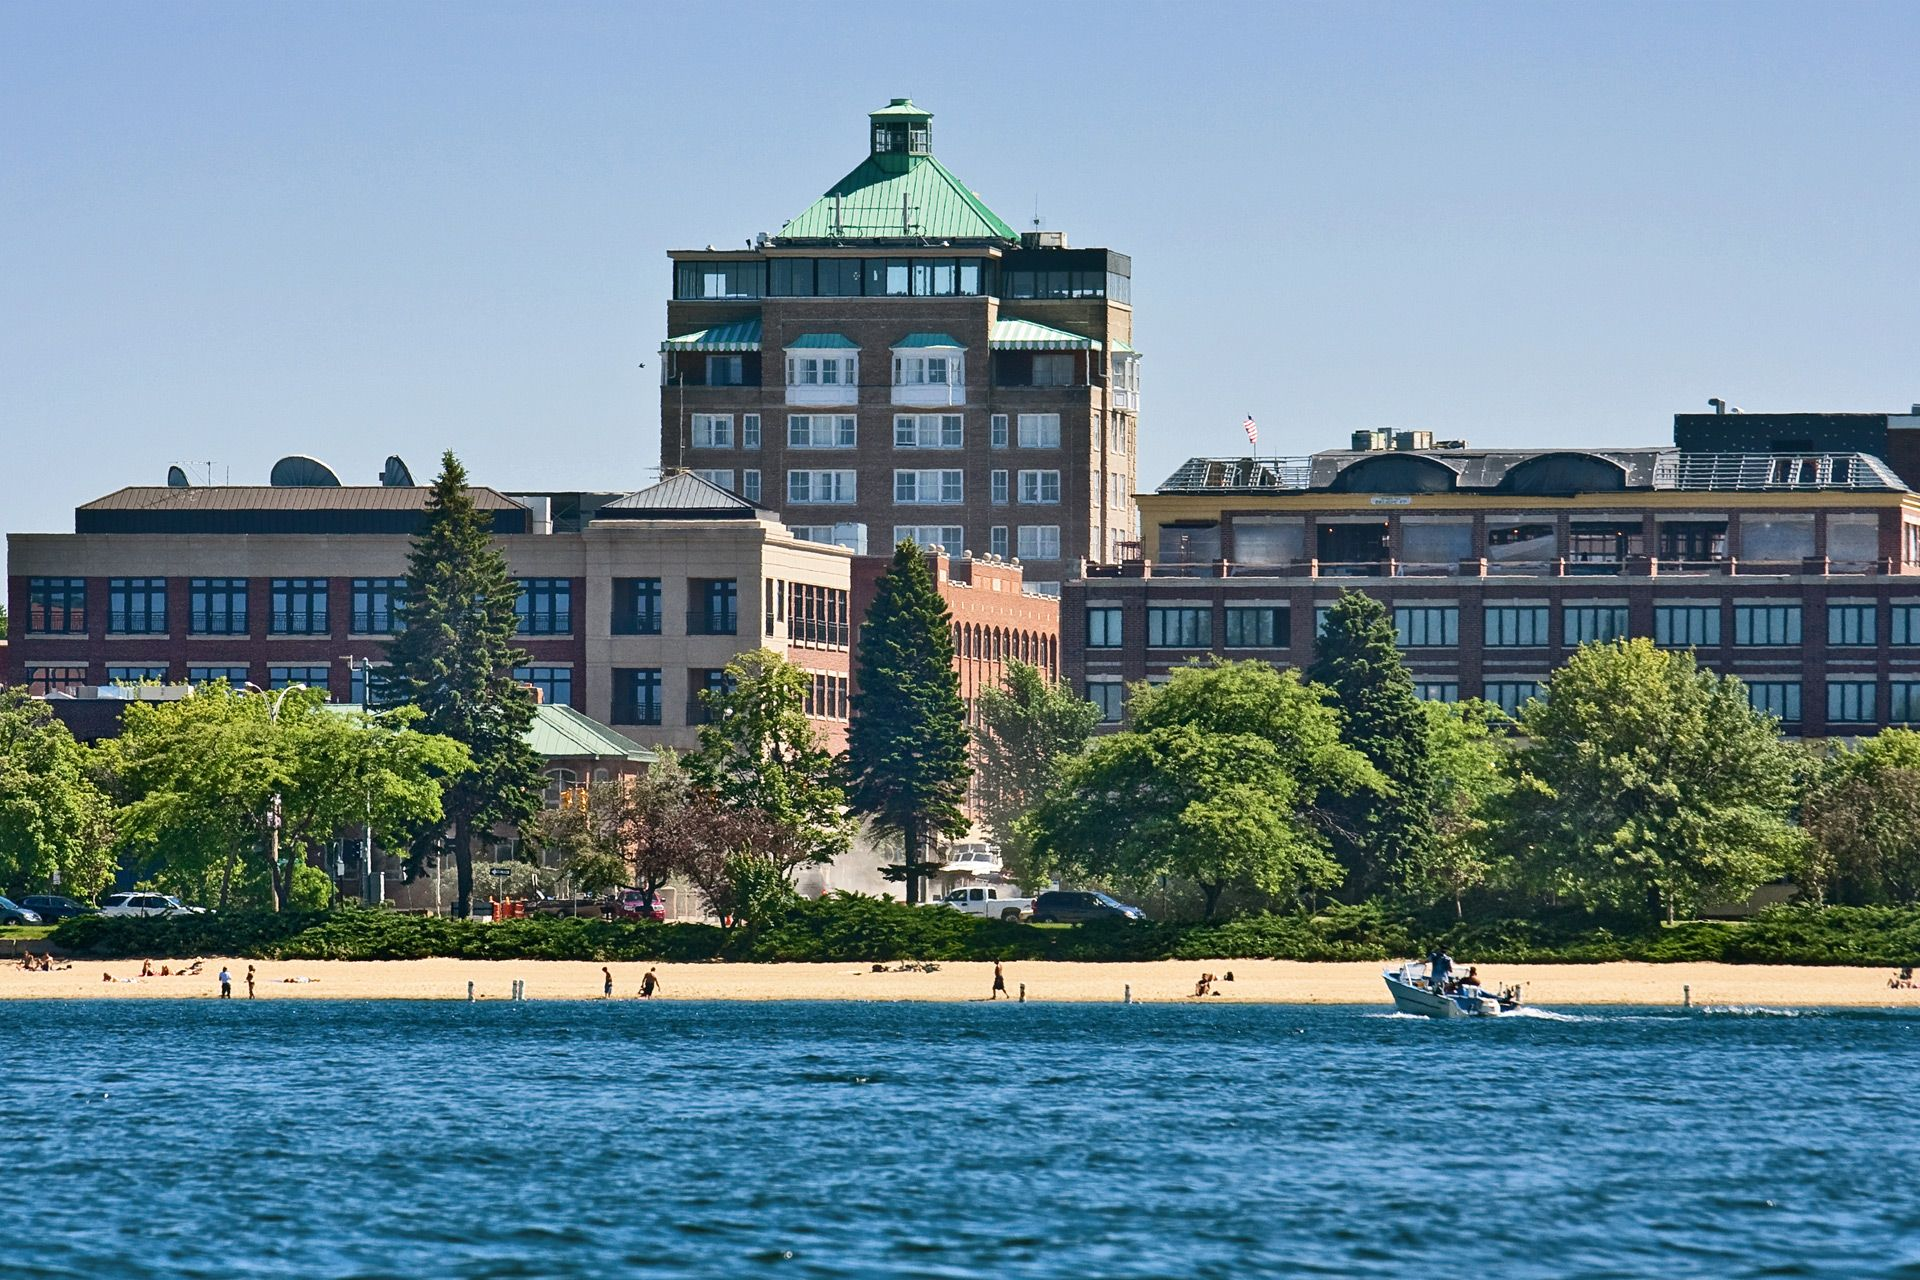 Traverse City Mi Park Place Hotel Has Welcomed Visitors Since 1873 The 10 Story Tower A Short Stroll From Bustling Fro Hotel Place Places Traverse City Mi